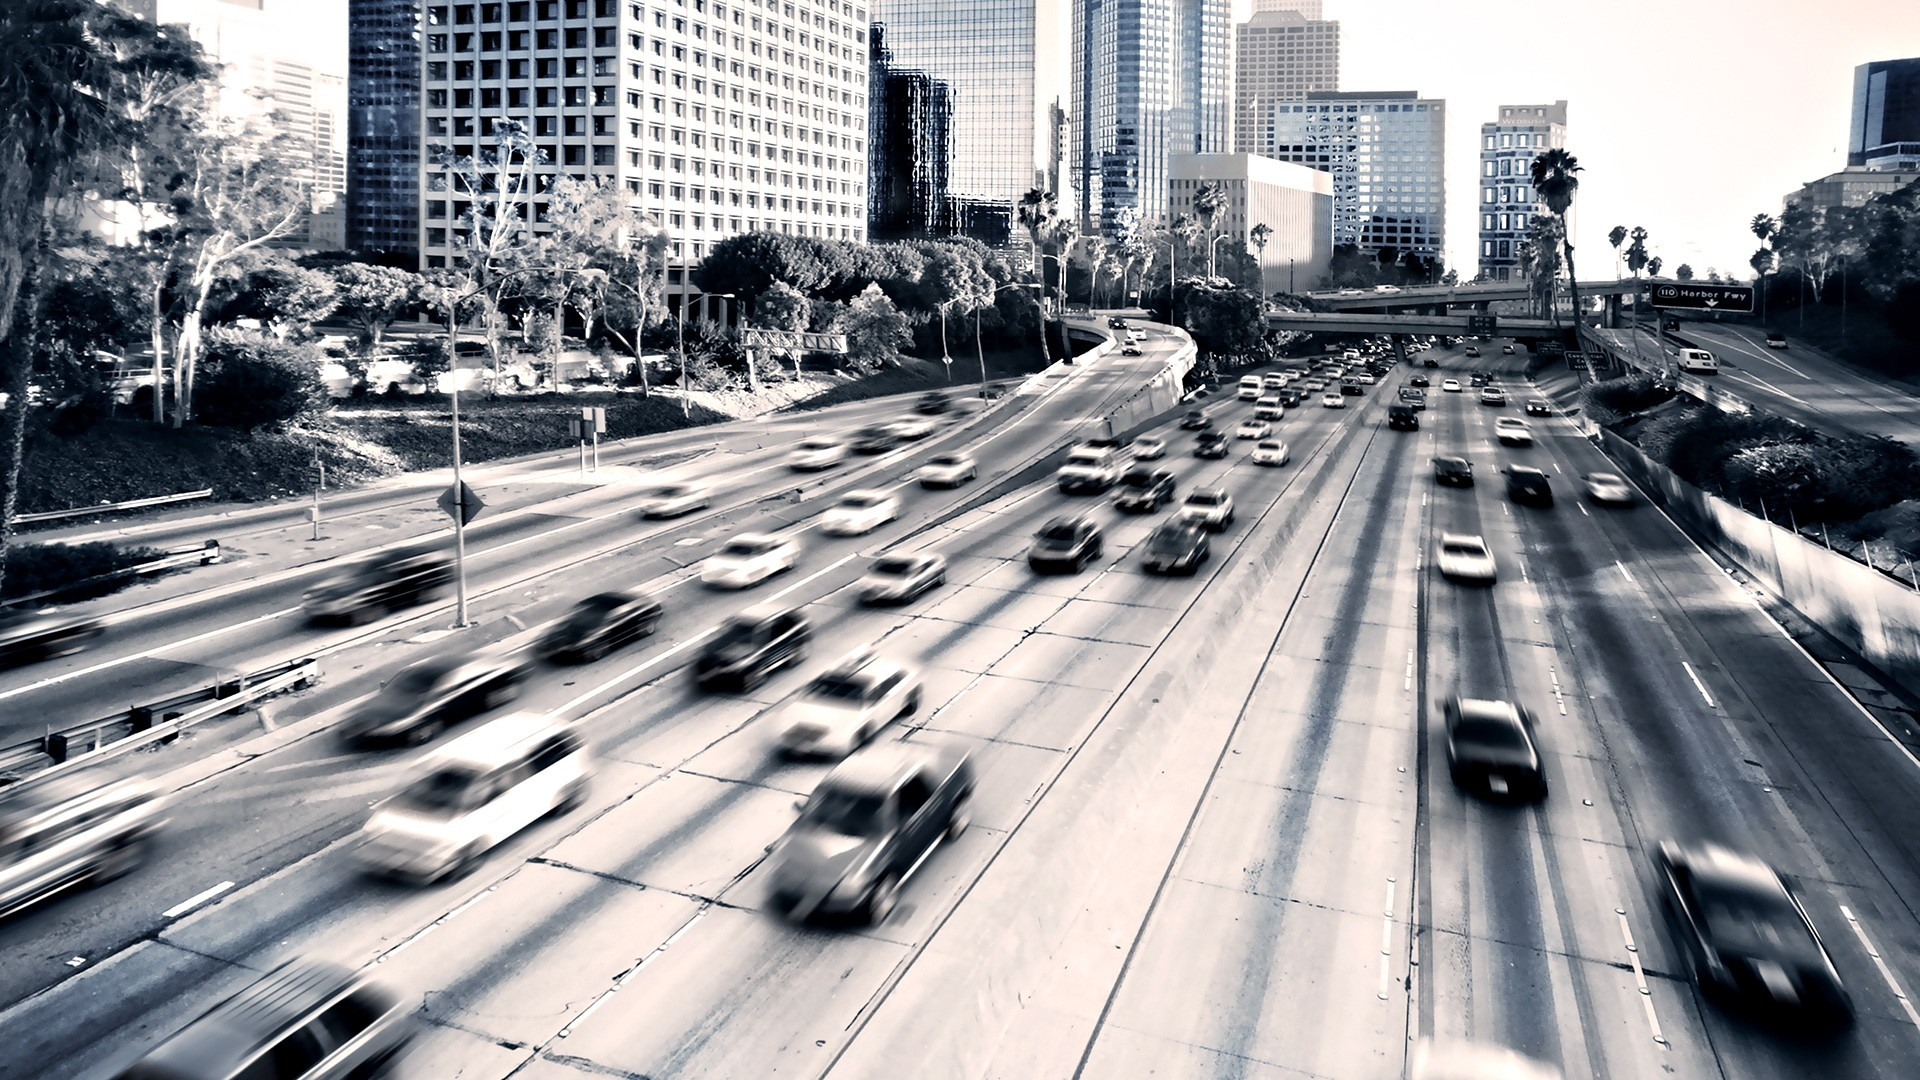 Download Wallpaper 1920x1080 Highway, Cars, City, Traffic